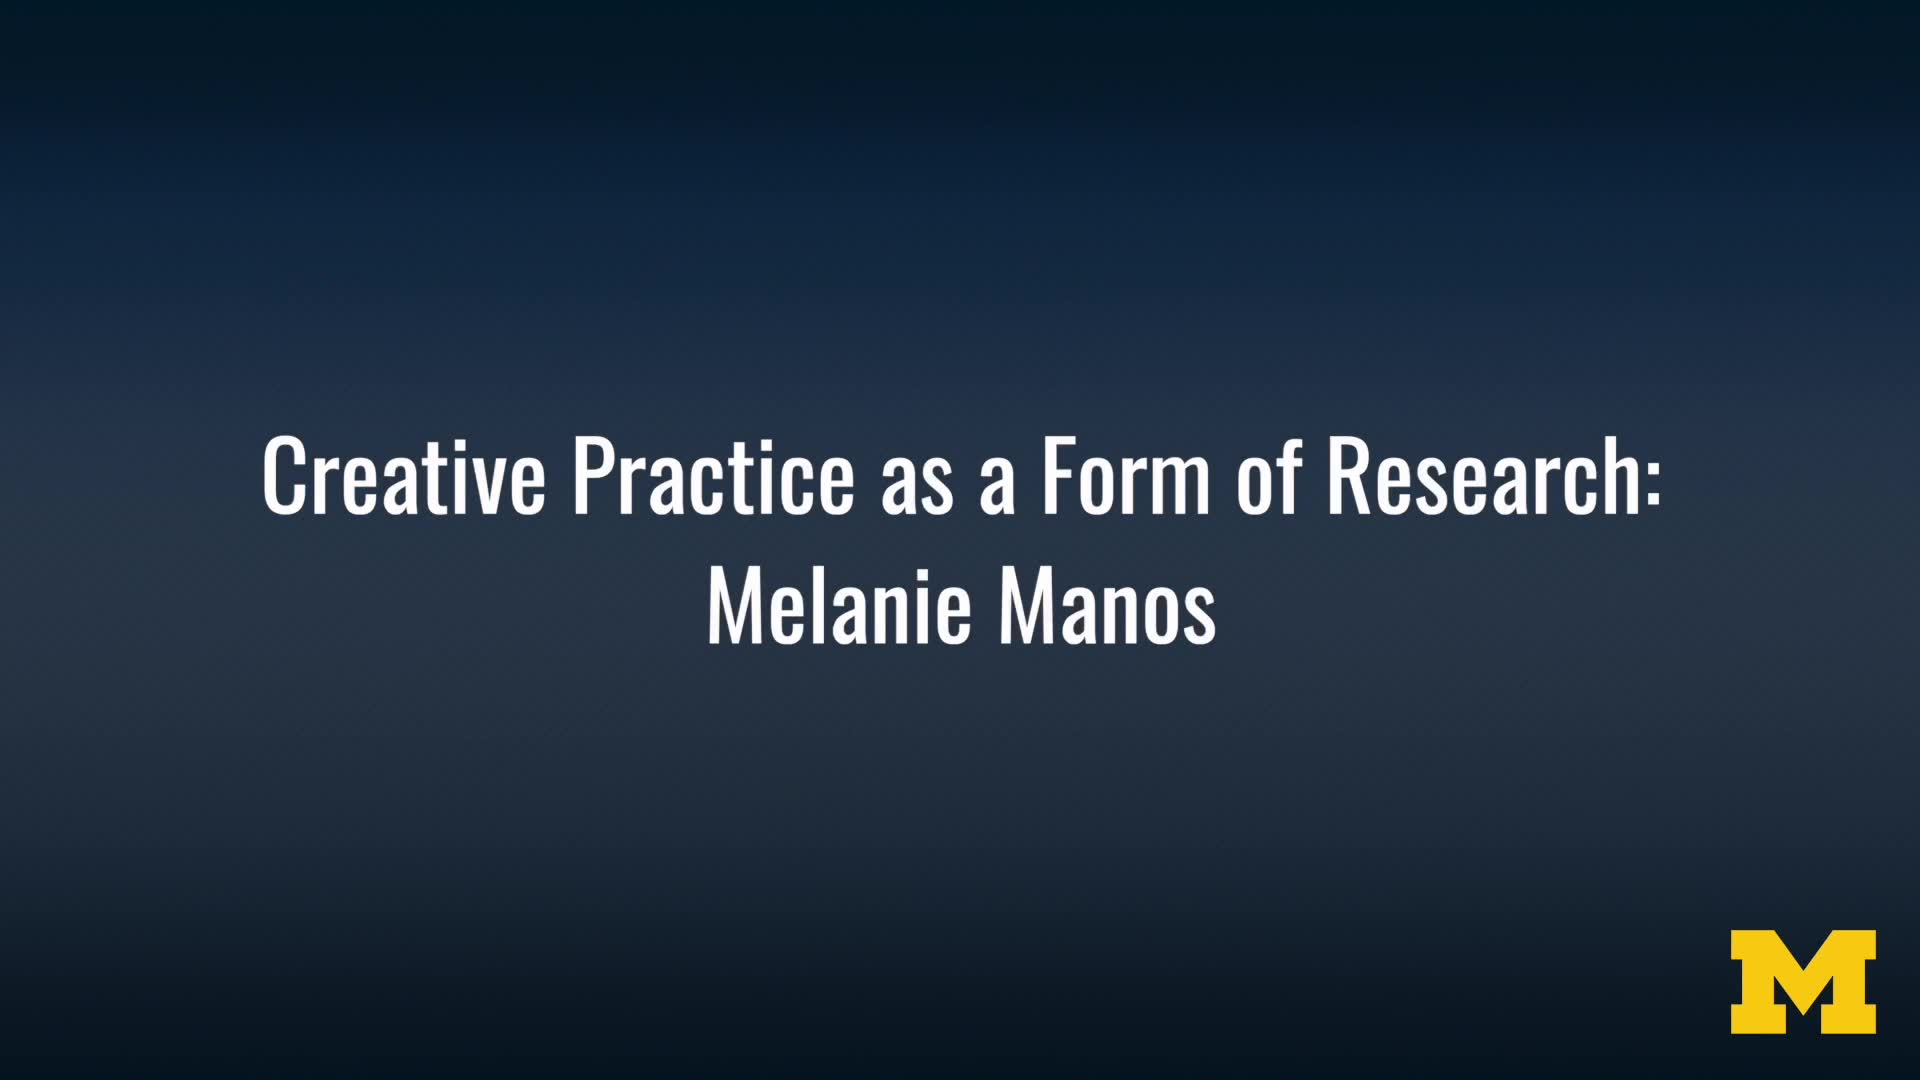 Creative Practice as a Form of Research: Melanie Manos